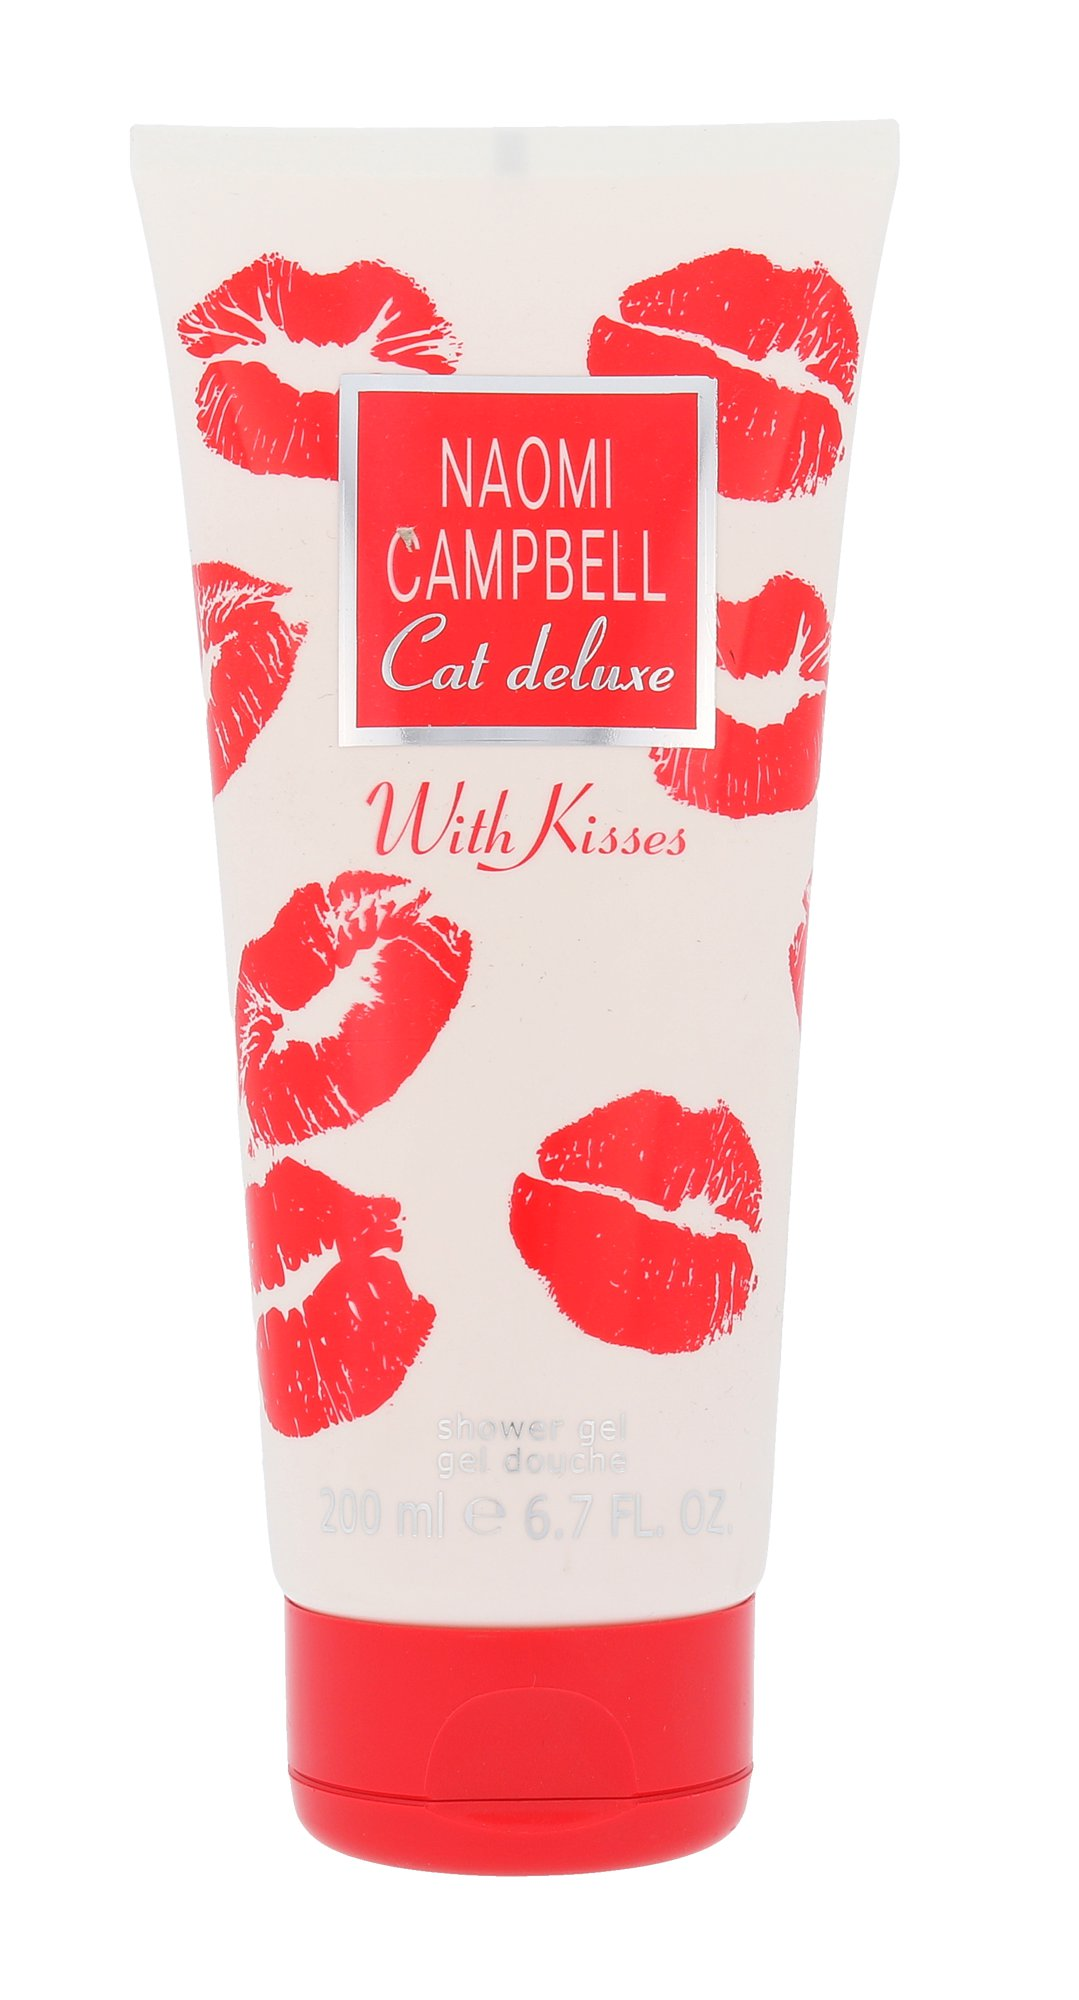 Naomi Campbell Cat Deluxe With Kisses, Sprchovací gél 200ml